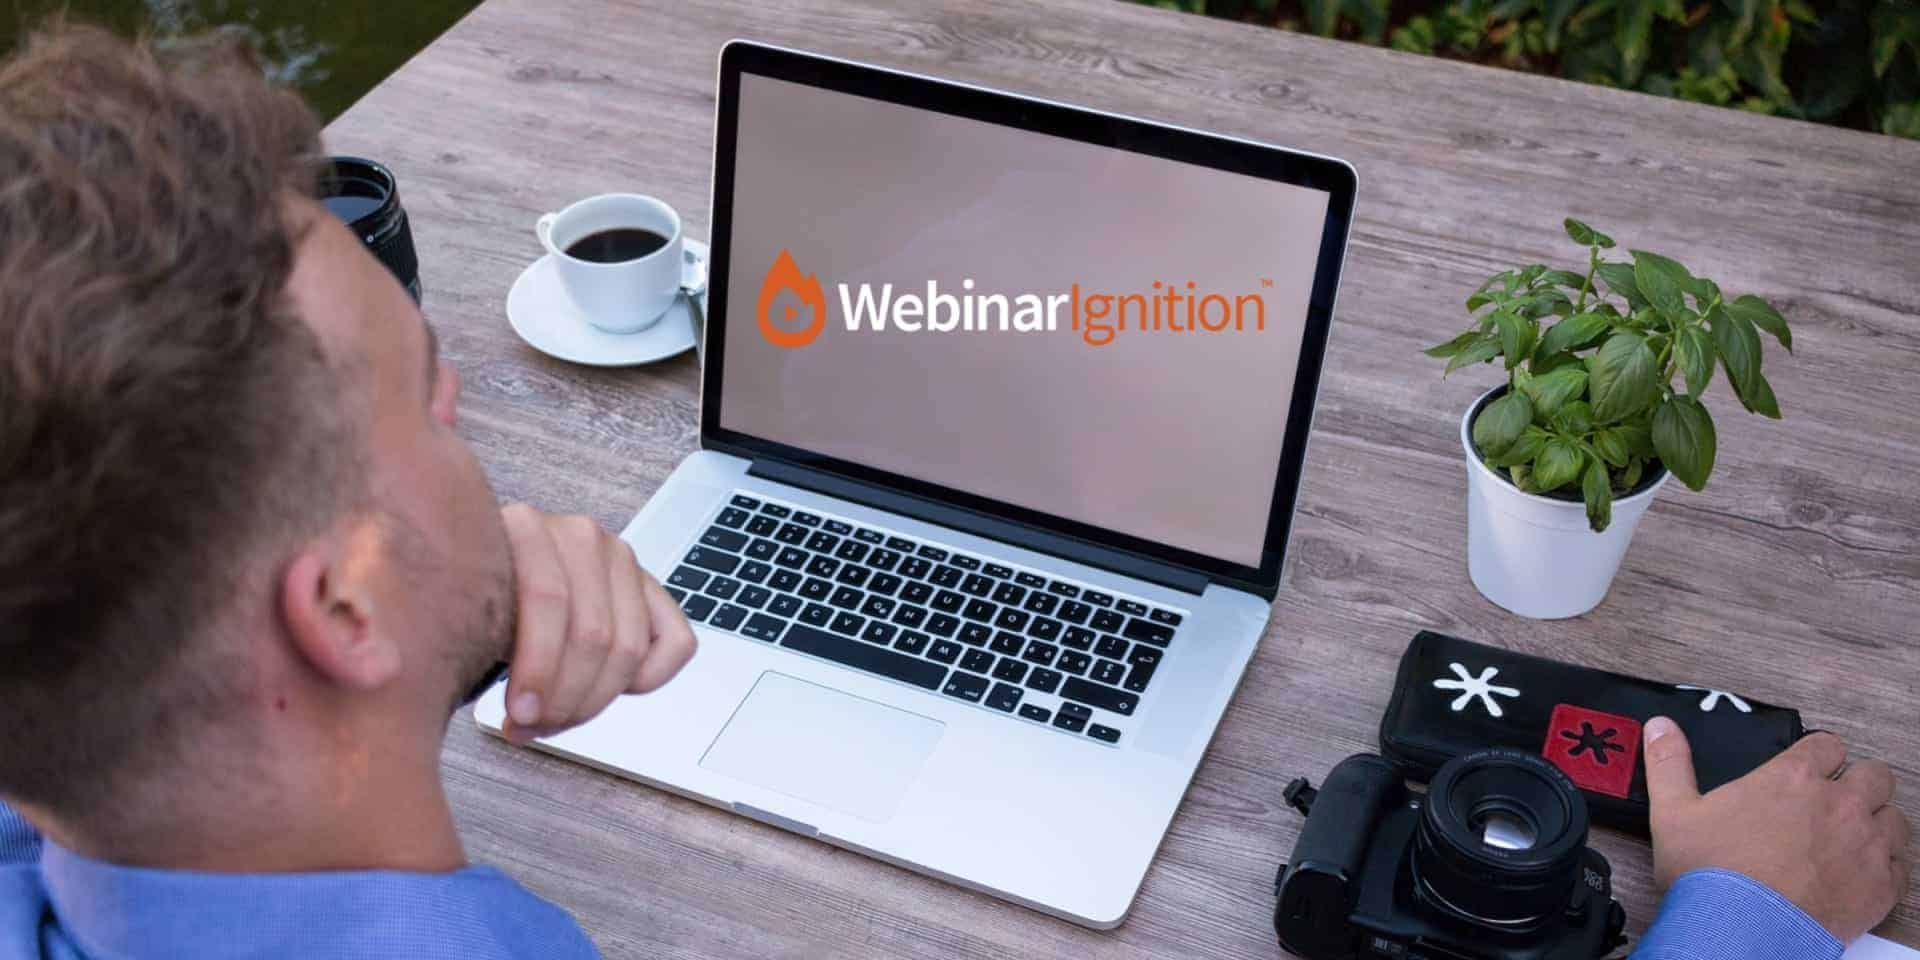 WebinarIgnition Review